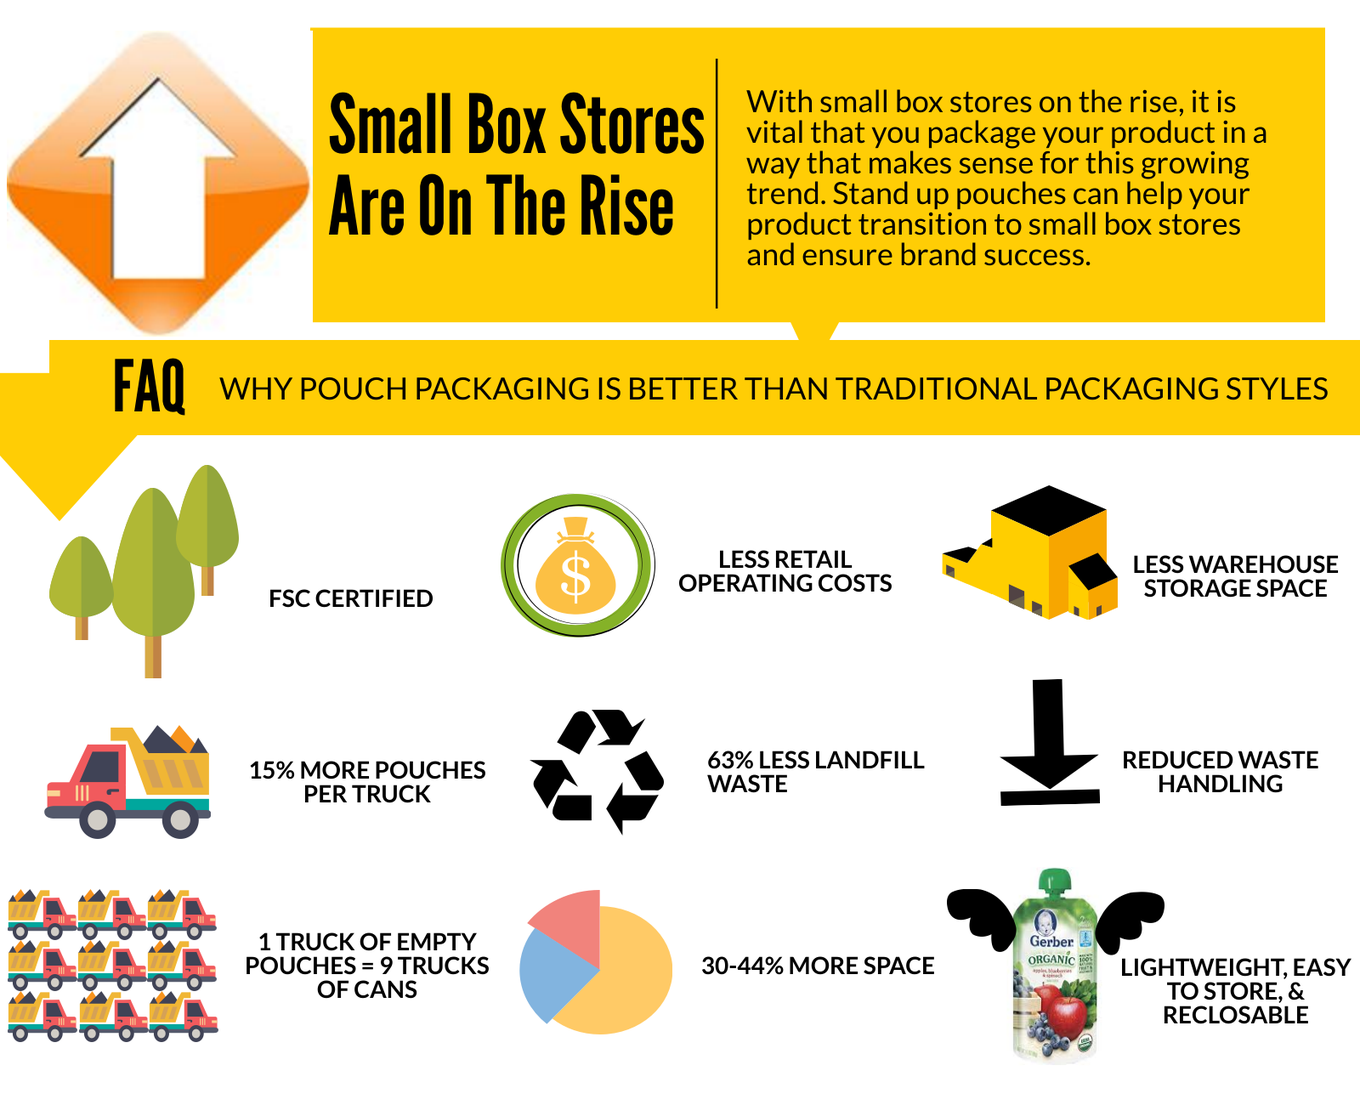 small box stores and pouch packaging